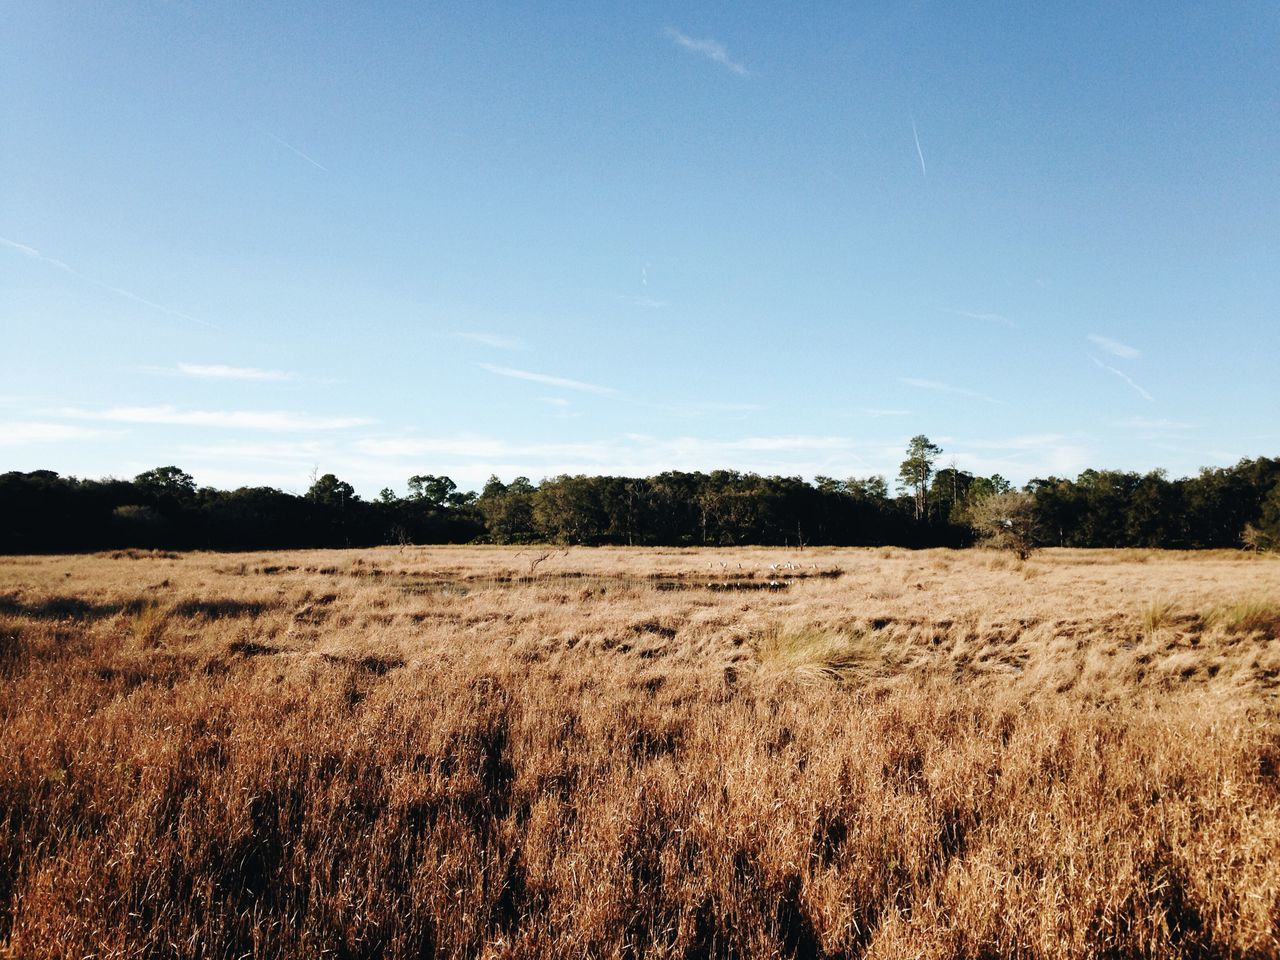 field, landscape, nature, tranquility, tranquil scene, beauty in nature, no people, scenics, tree, agriculture, growth, outdoors, day, grass, sky